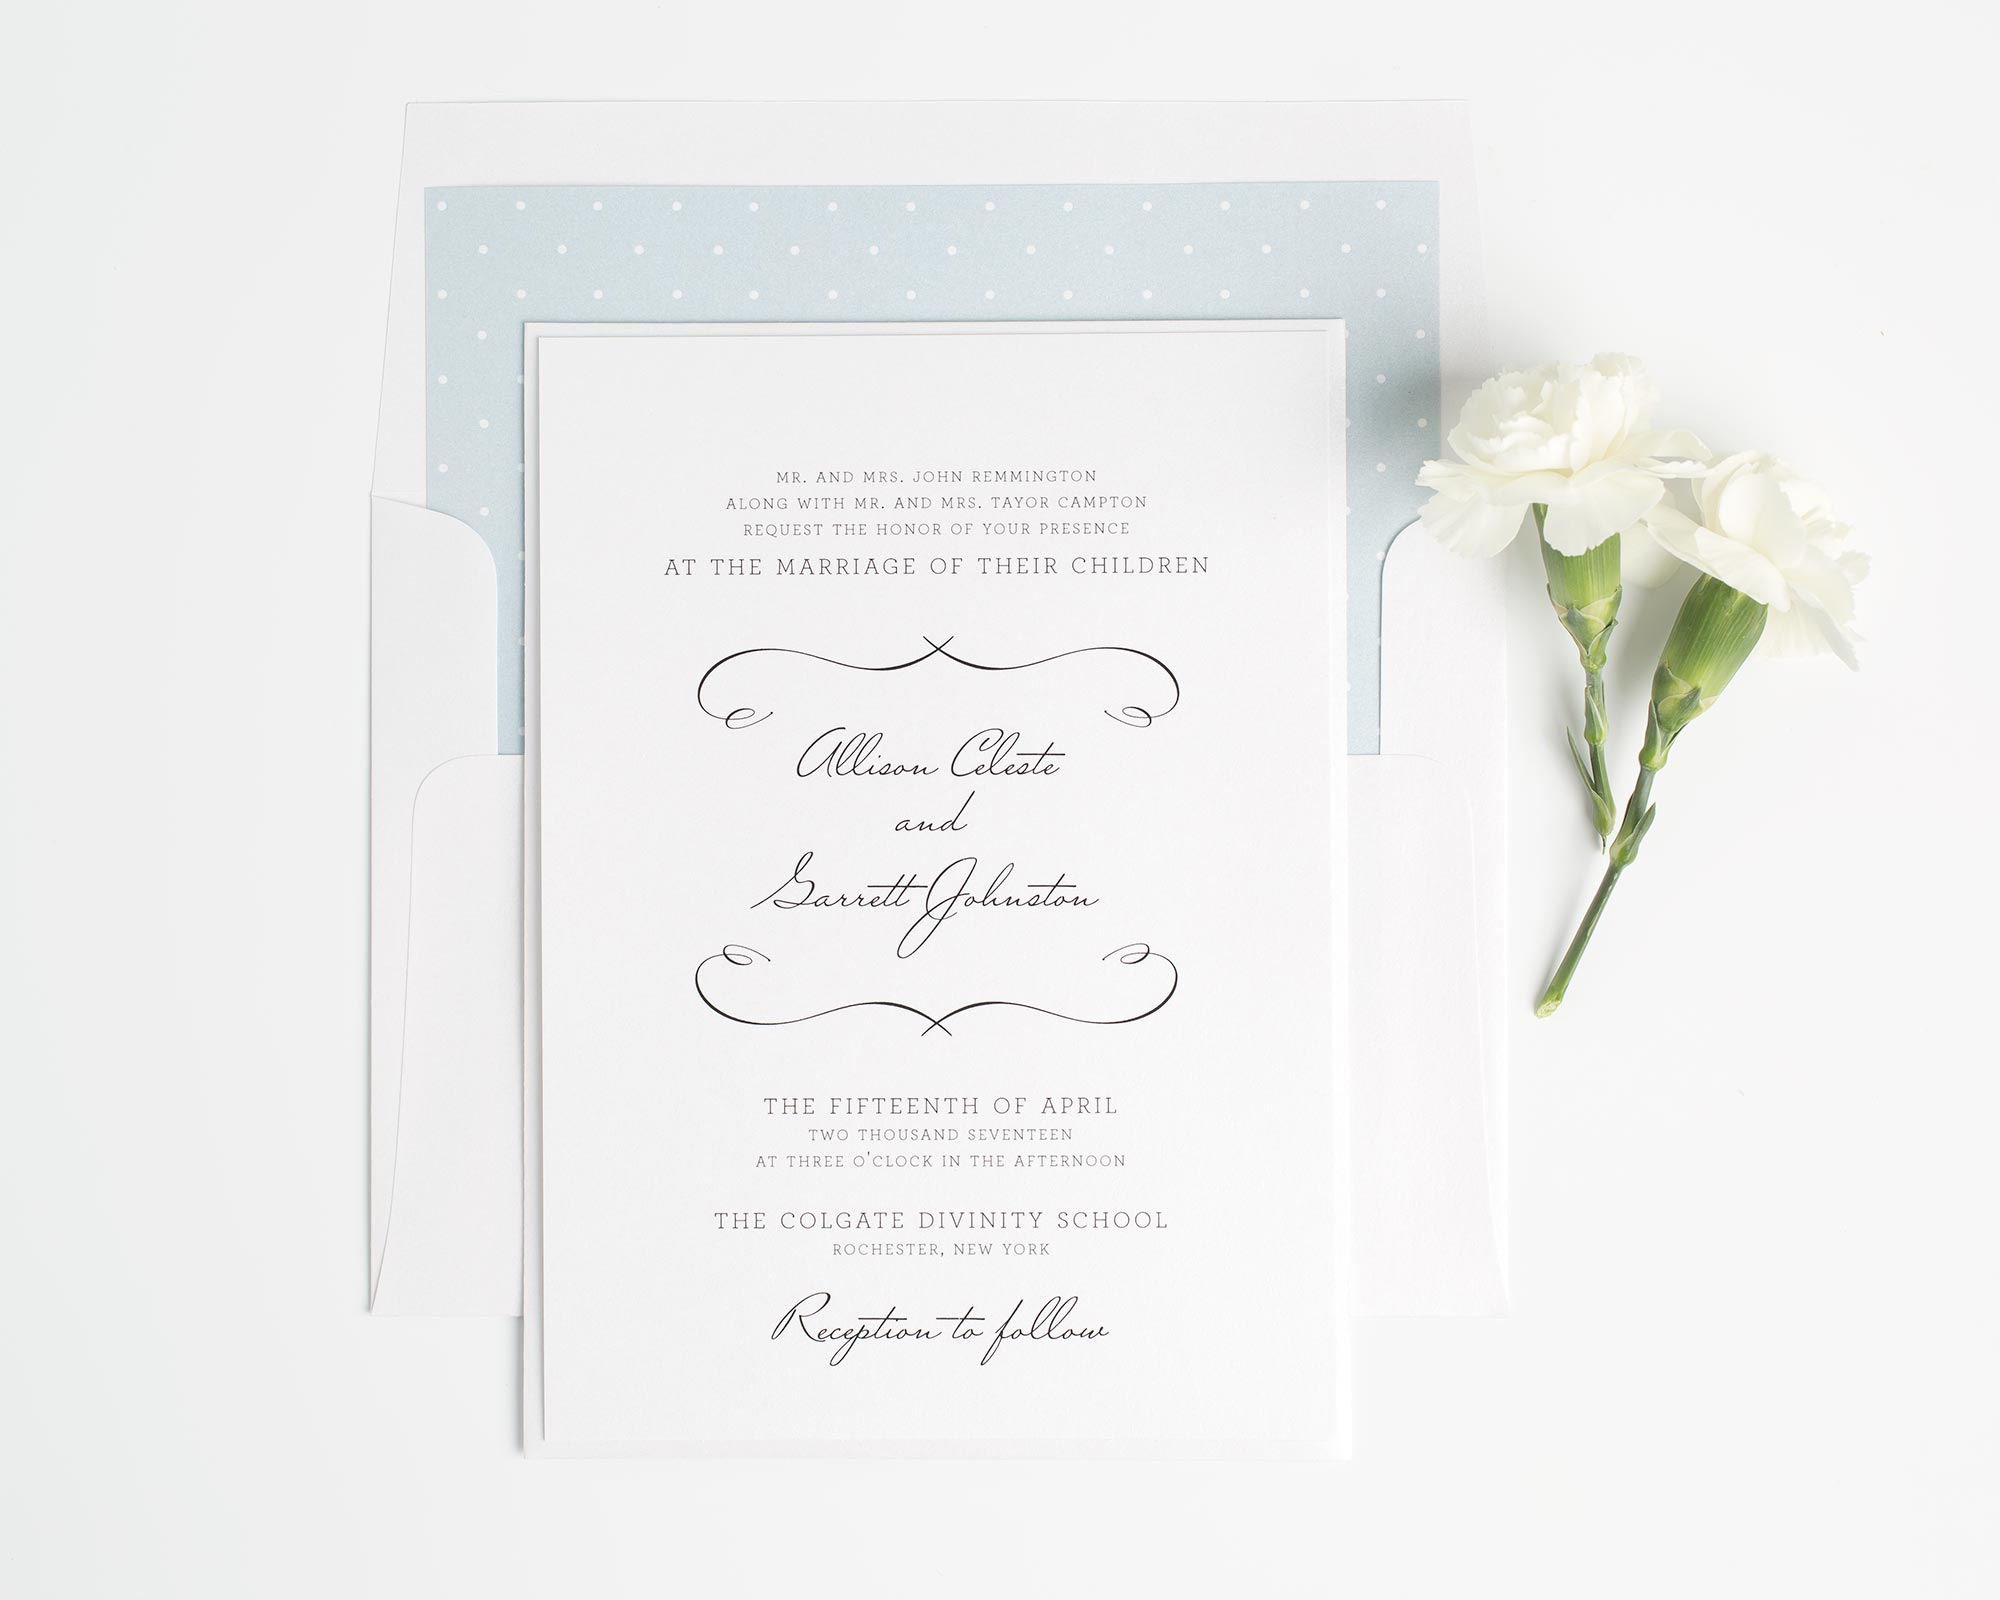 French Country Wedding Invitations In White   Wedding Invitations By Shine